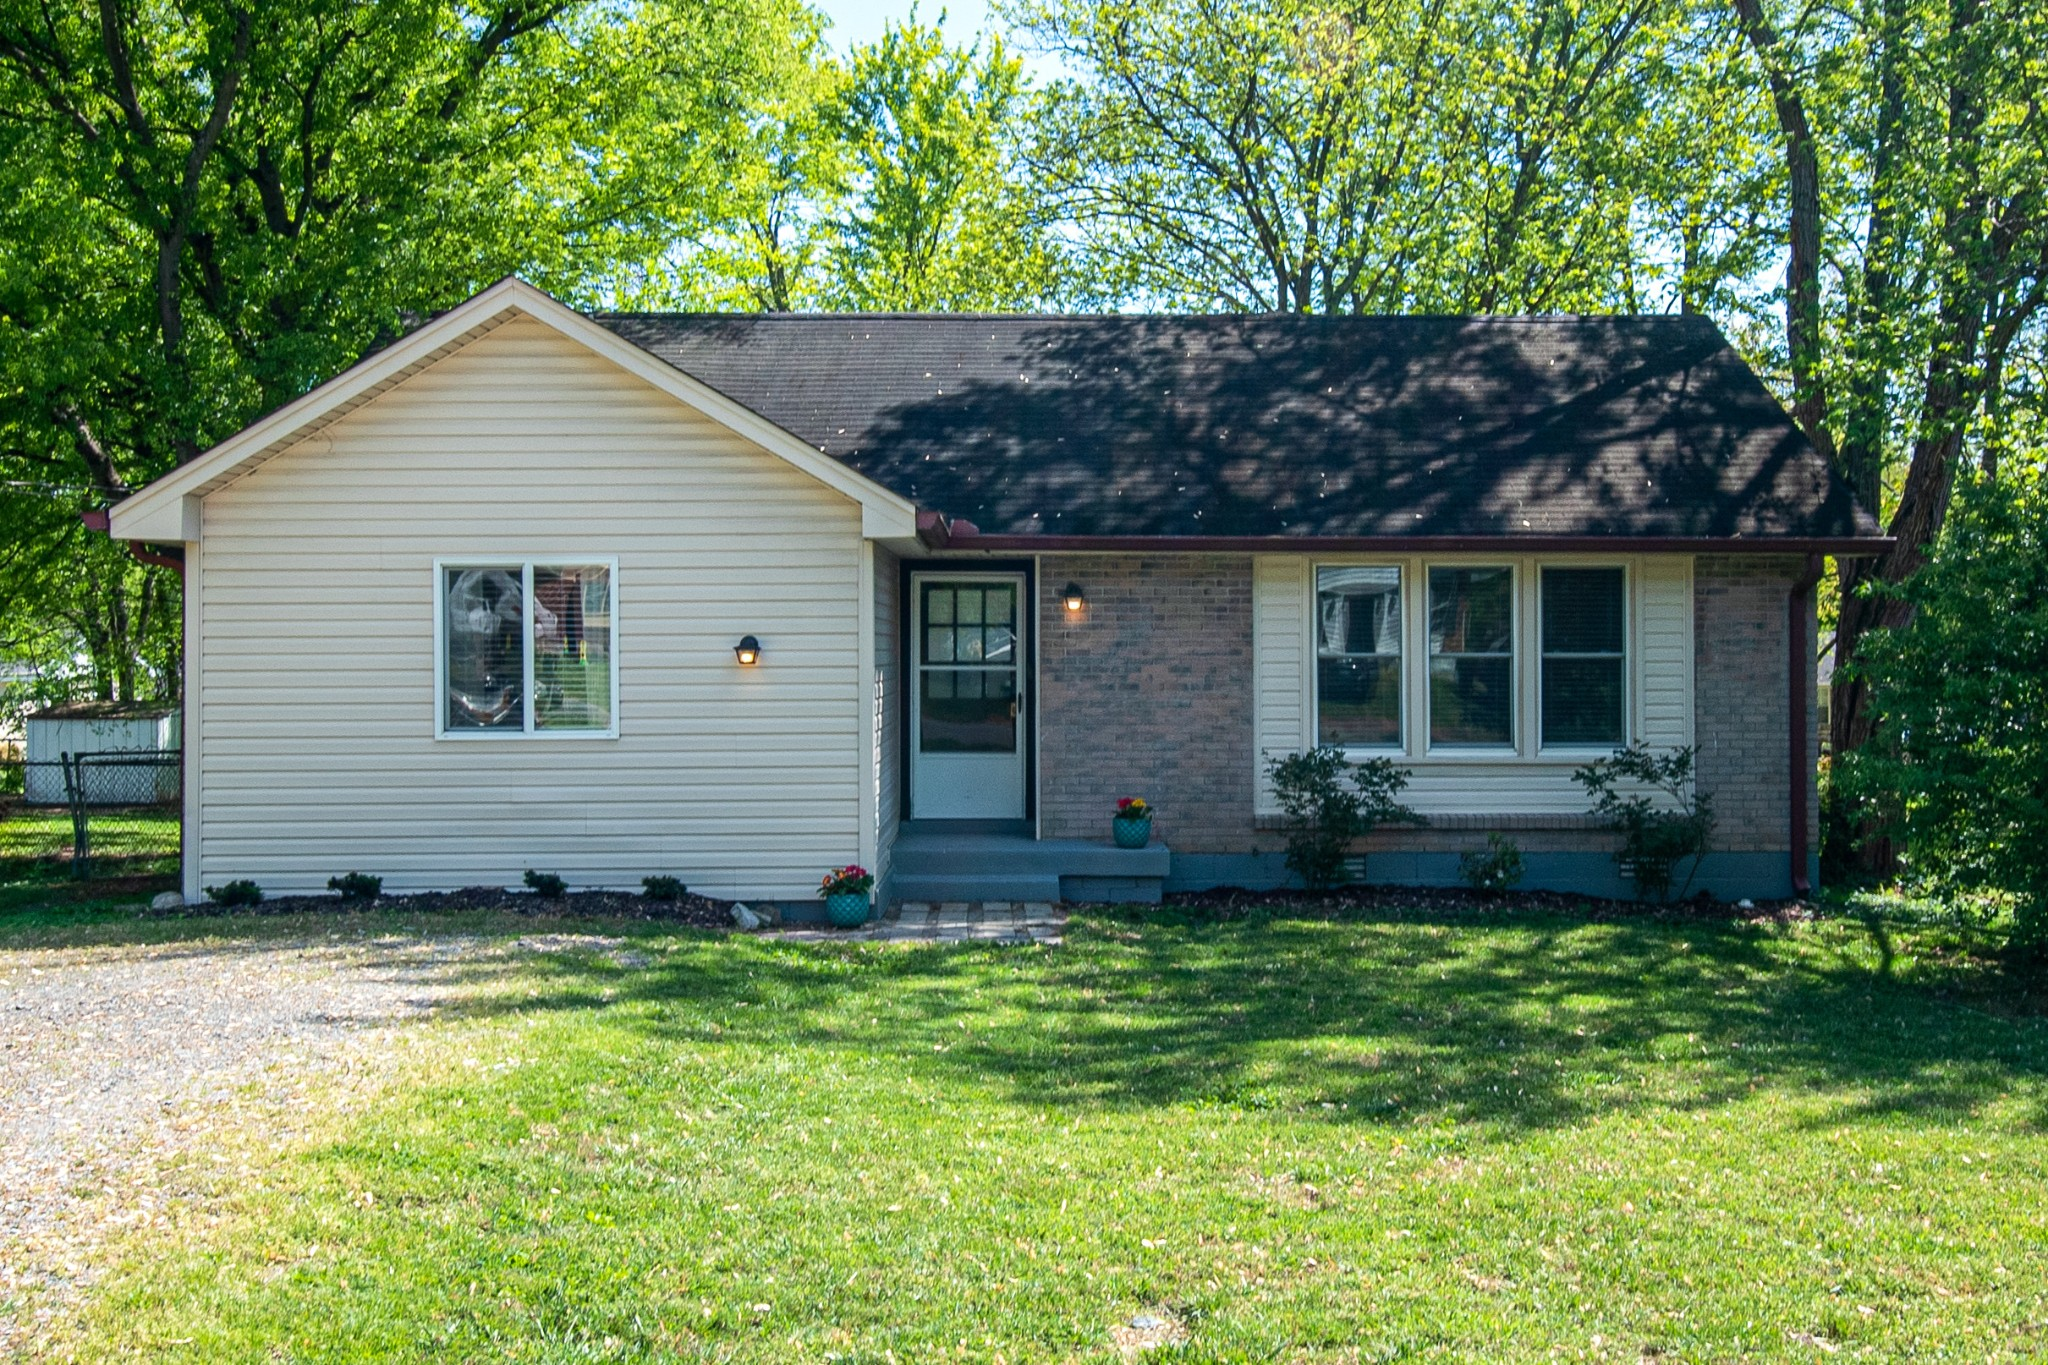 Well maintained home with fresh paint, ready for it's new owner! Hvac 1.5 years old, roof 6 years old.  3 bed, 2 bath with spacious backyard and cozy deck.  First Open House Sunday, May 31 2-4pm!!